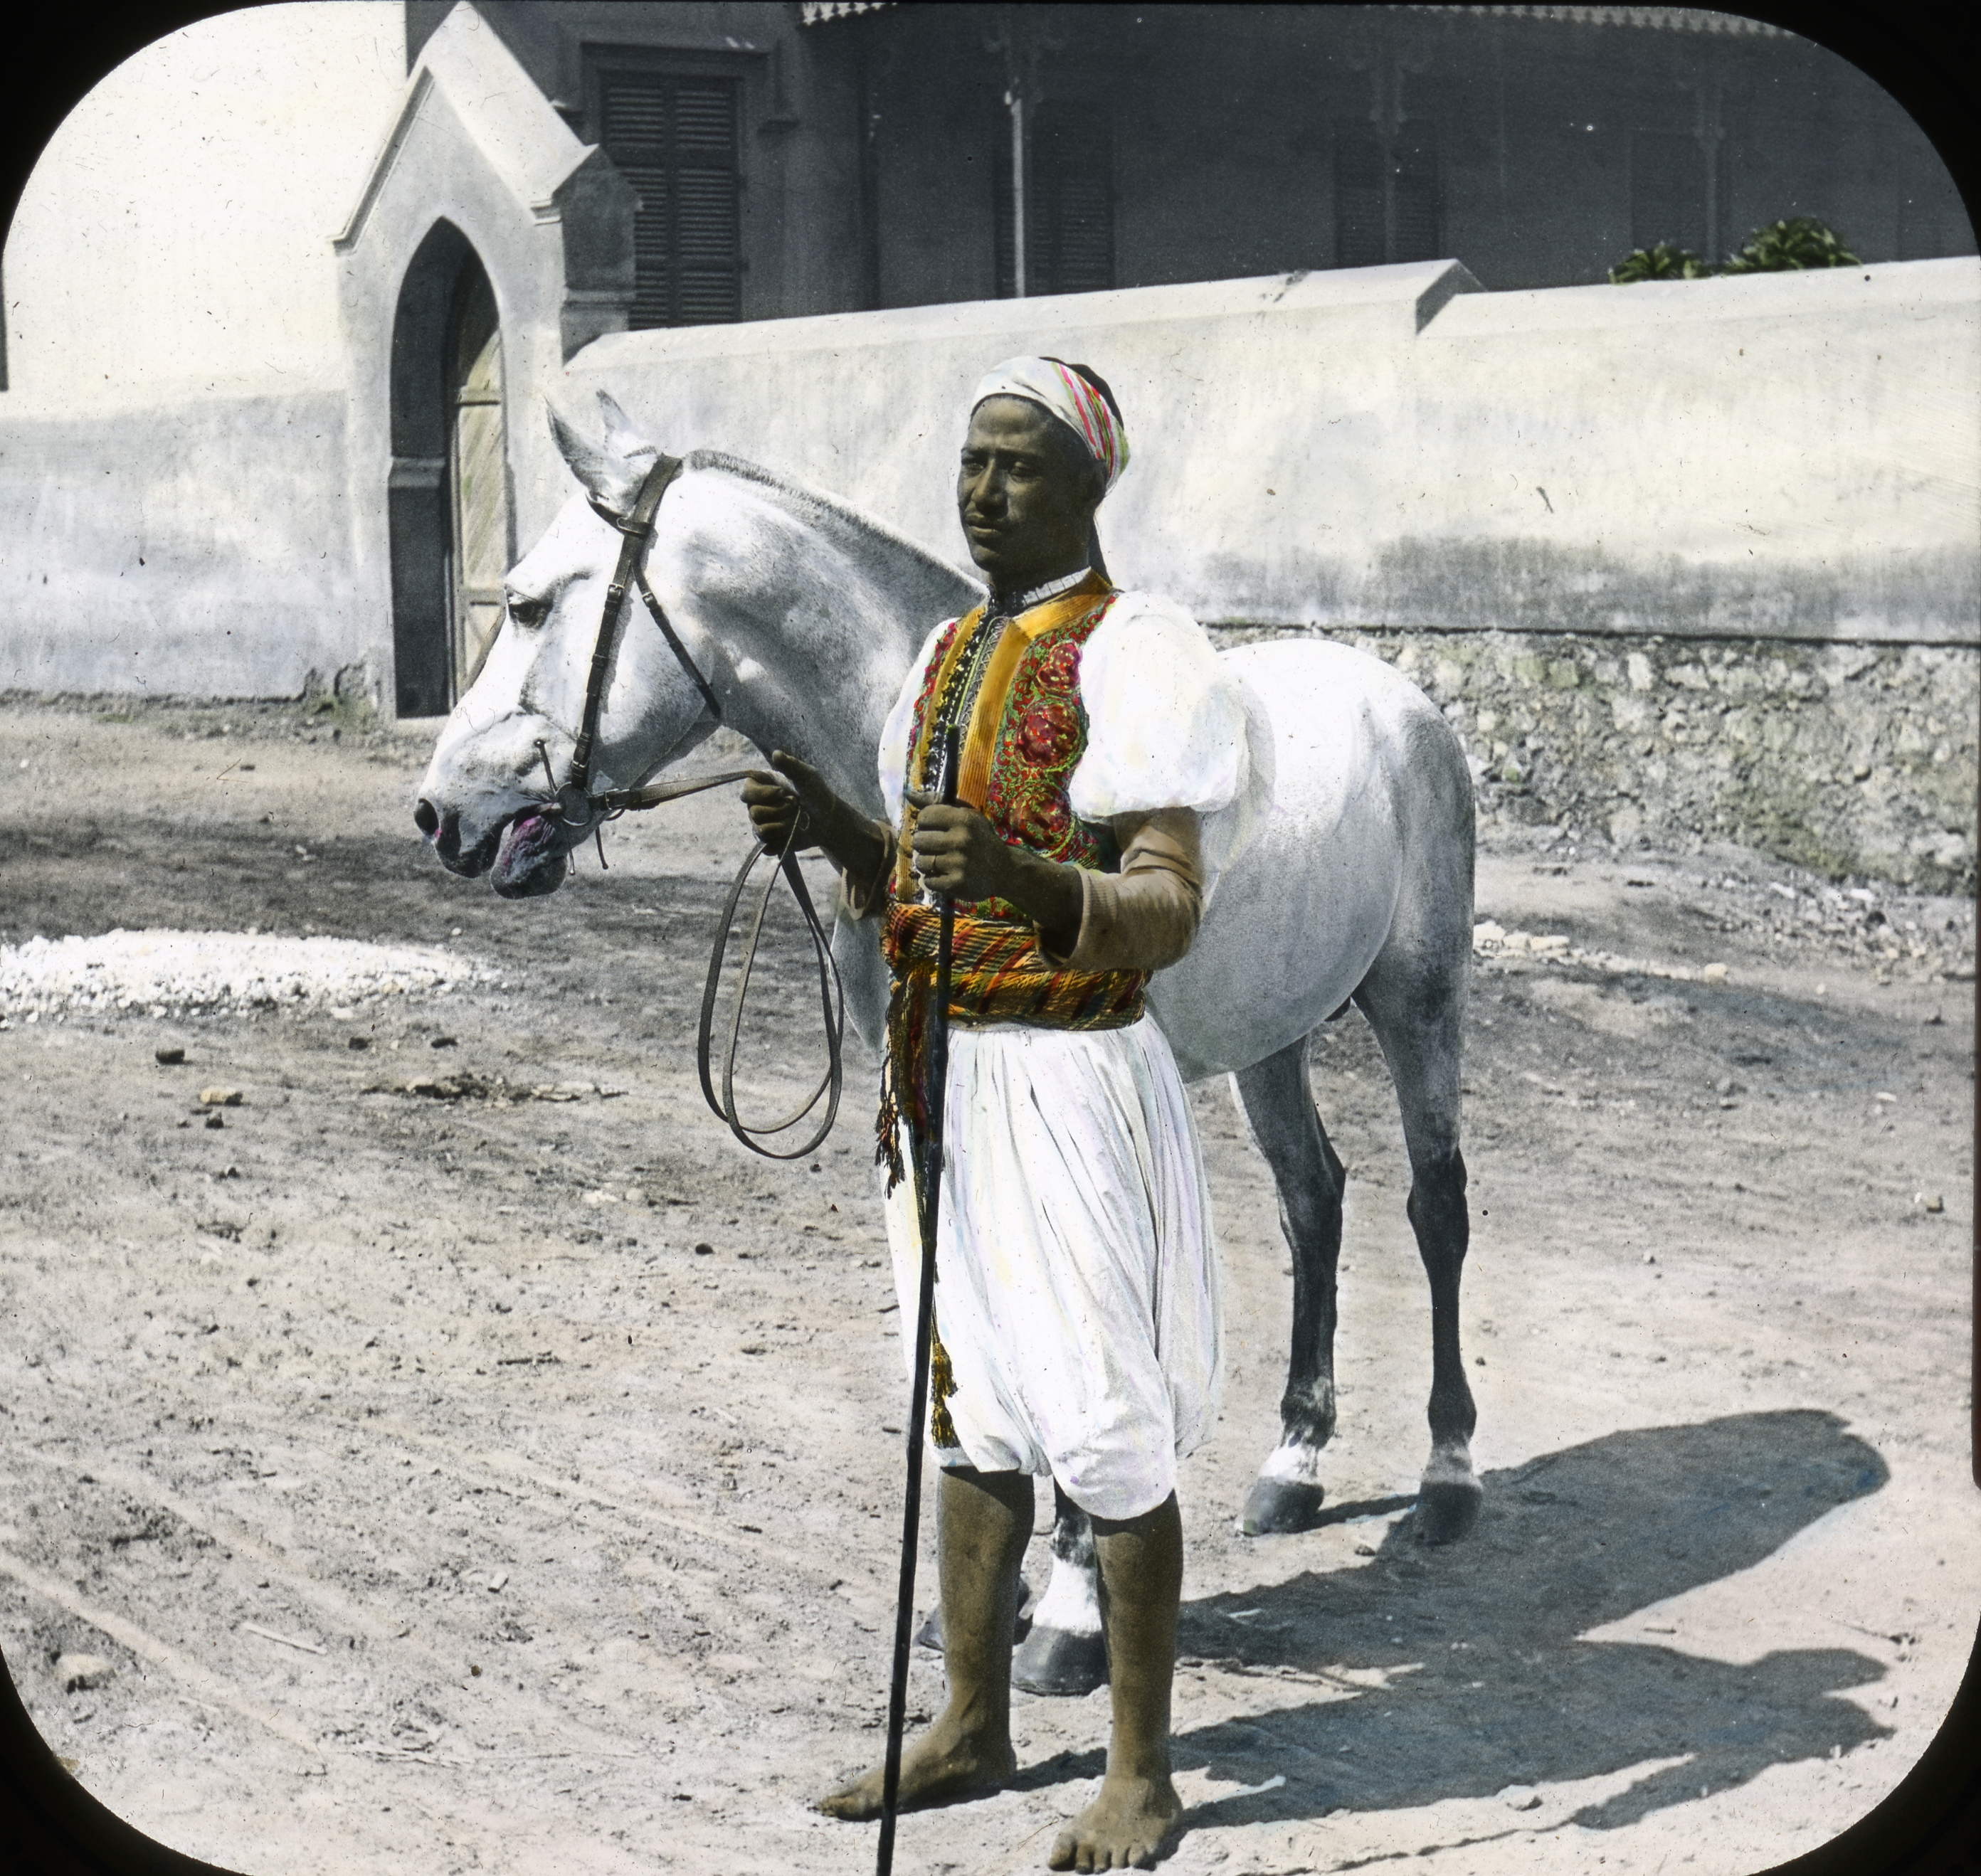 072 - Egypt - Arabian Horse and Sais, Cairo